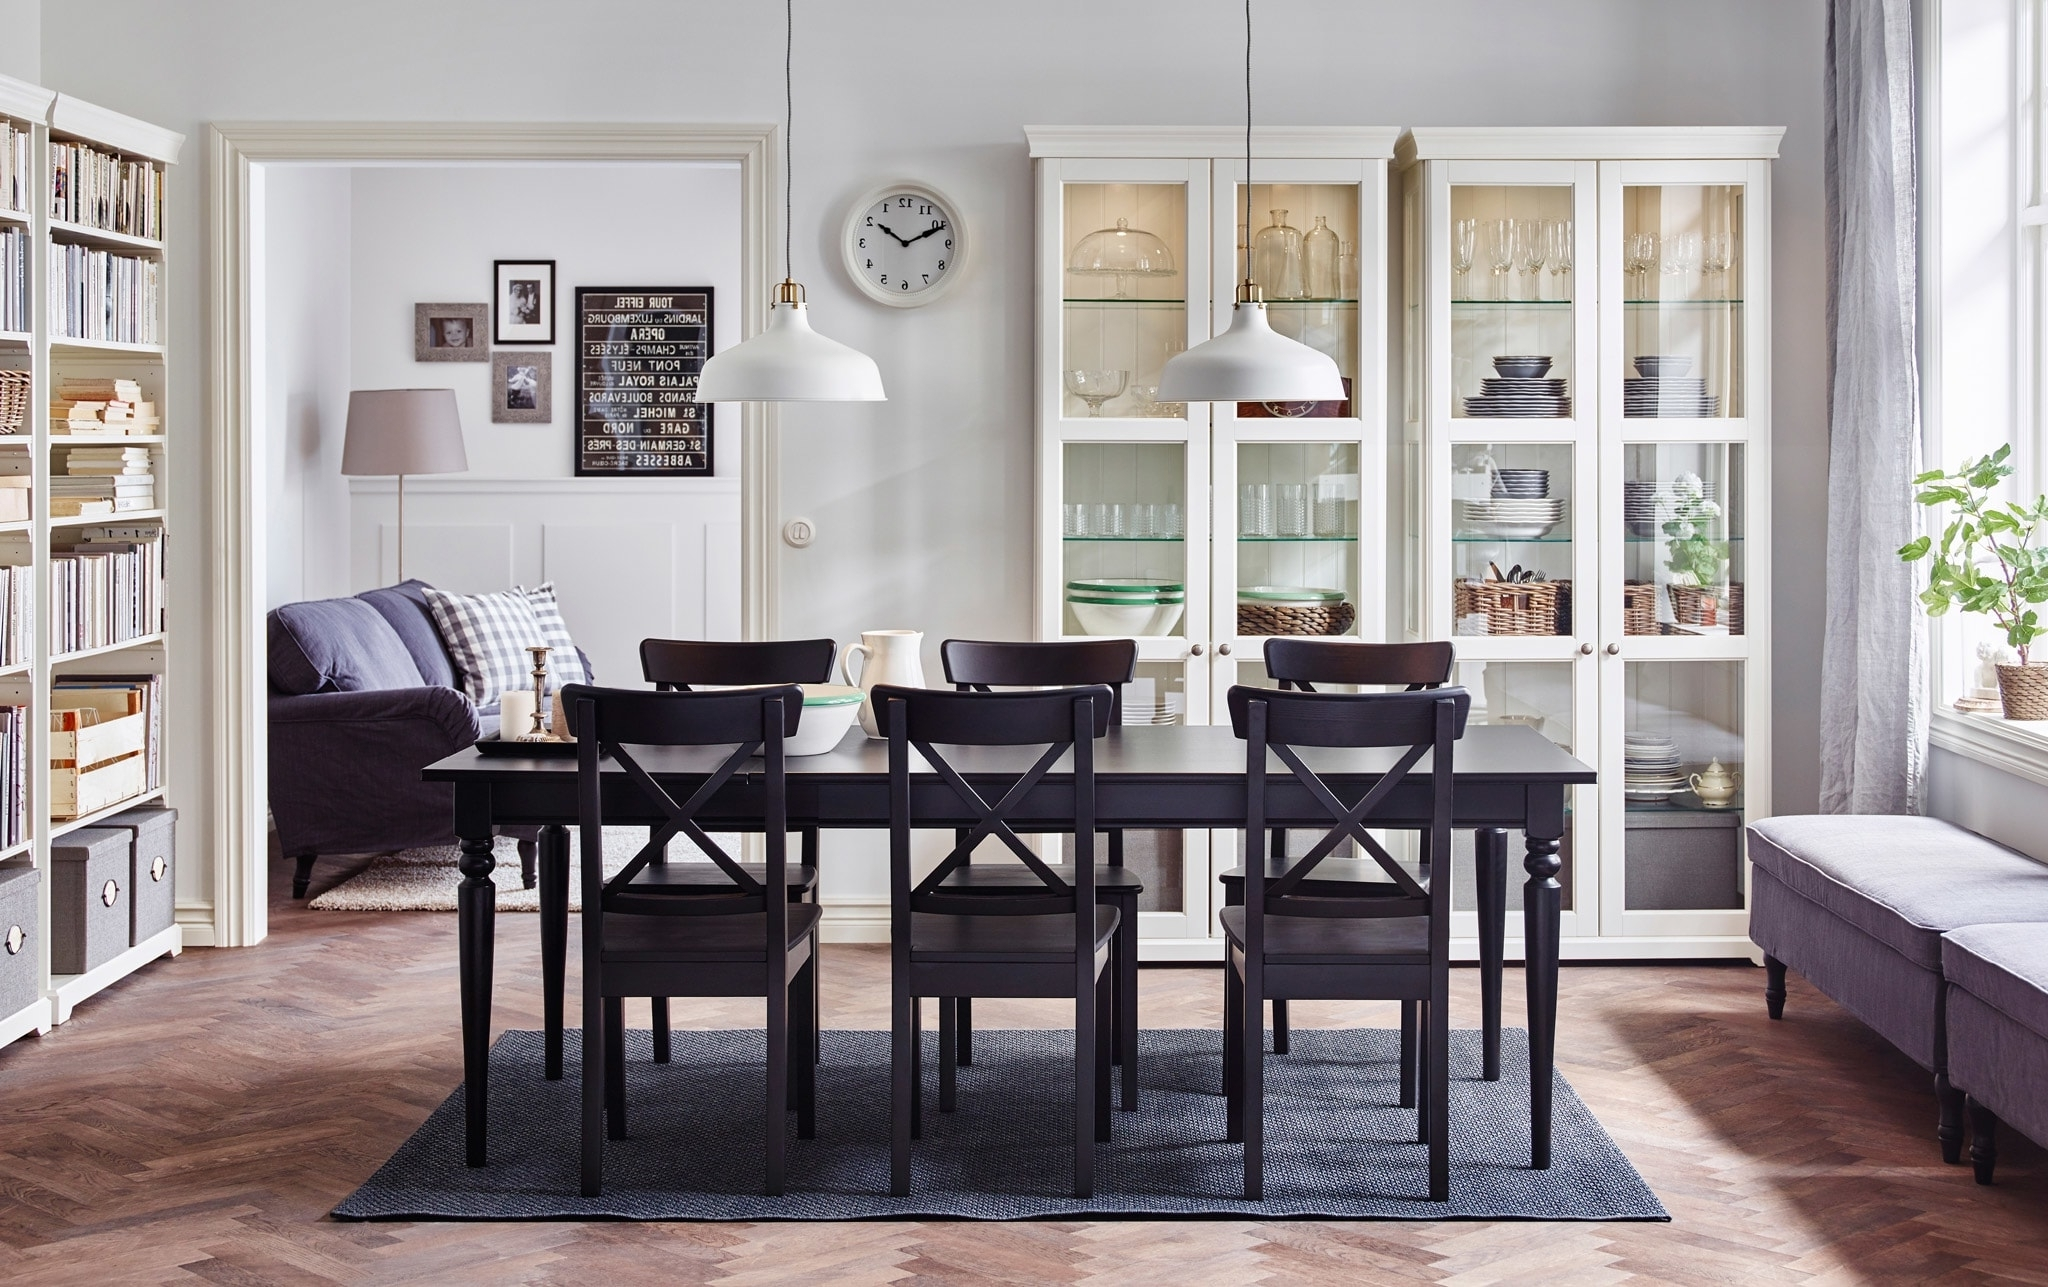 Ikea Round Dining Tables Set inside Most Up-to-Date Dining Room Furniture & Ideas